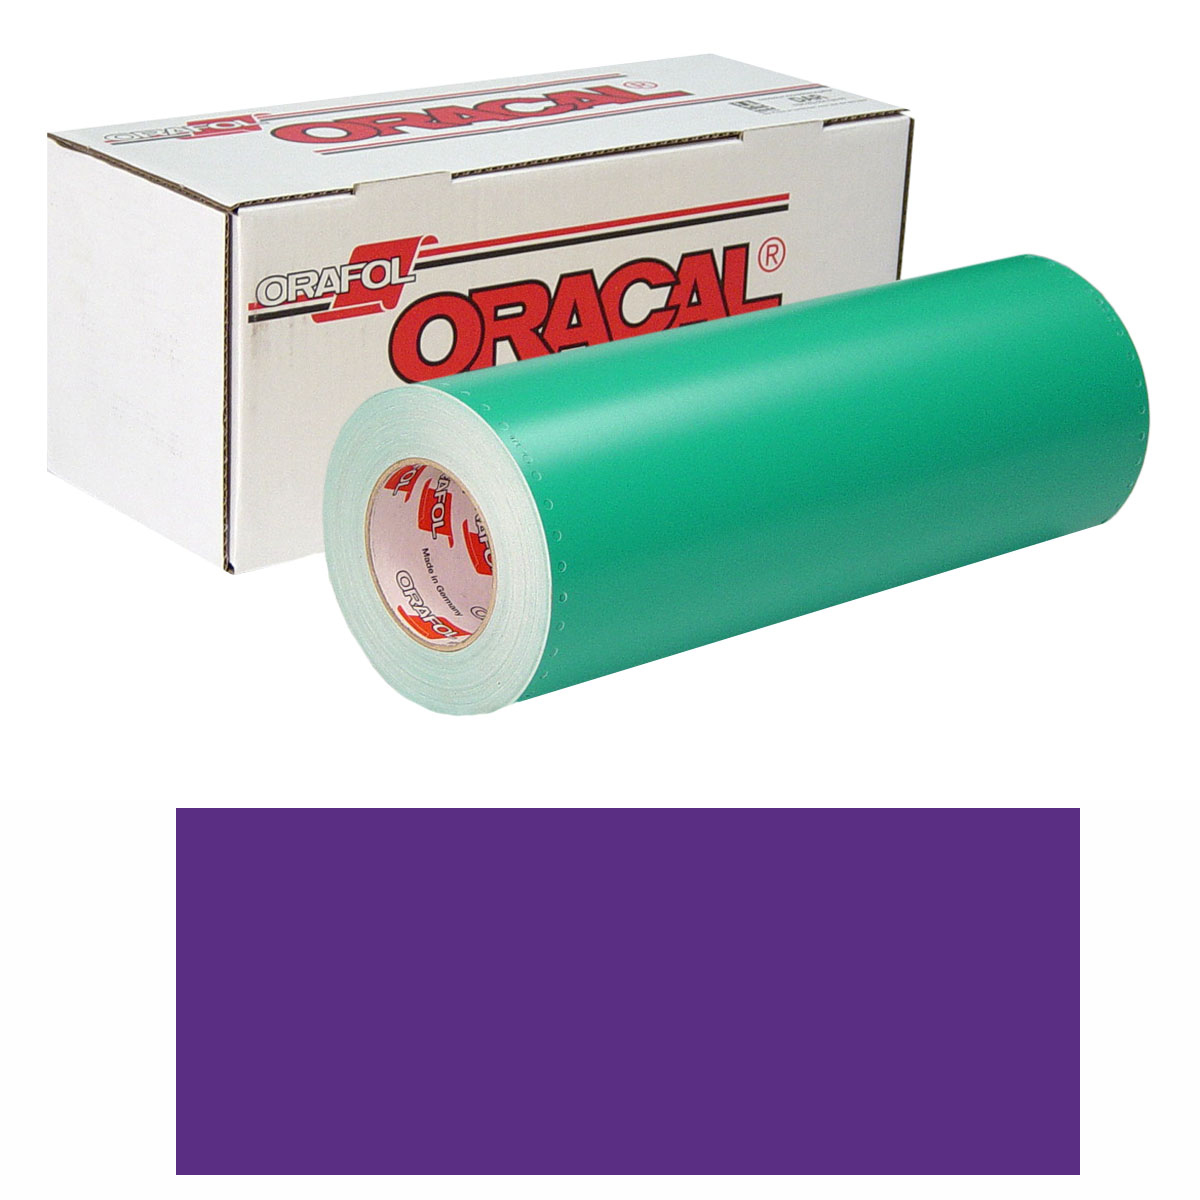 ORACAL 8500 30In X 50Yd 403 Light Violet